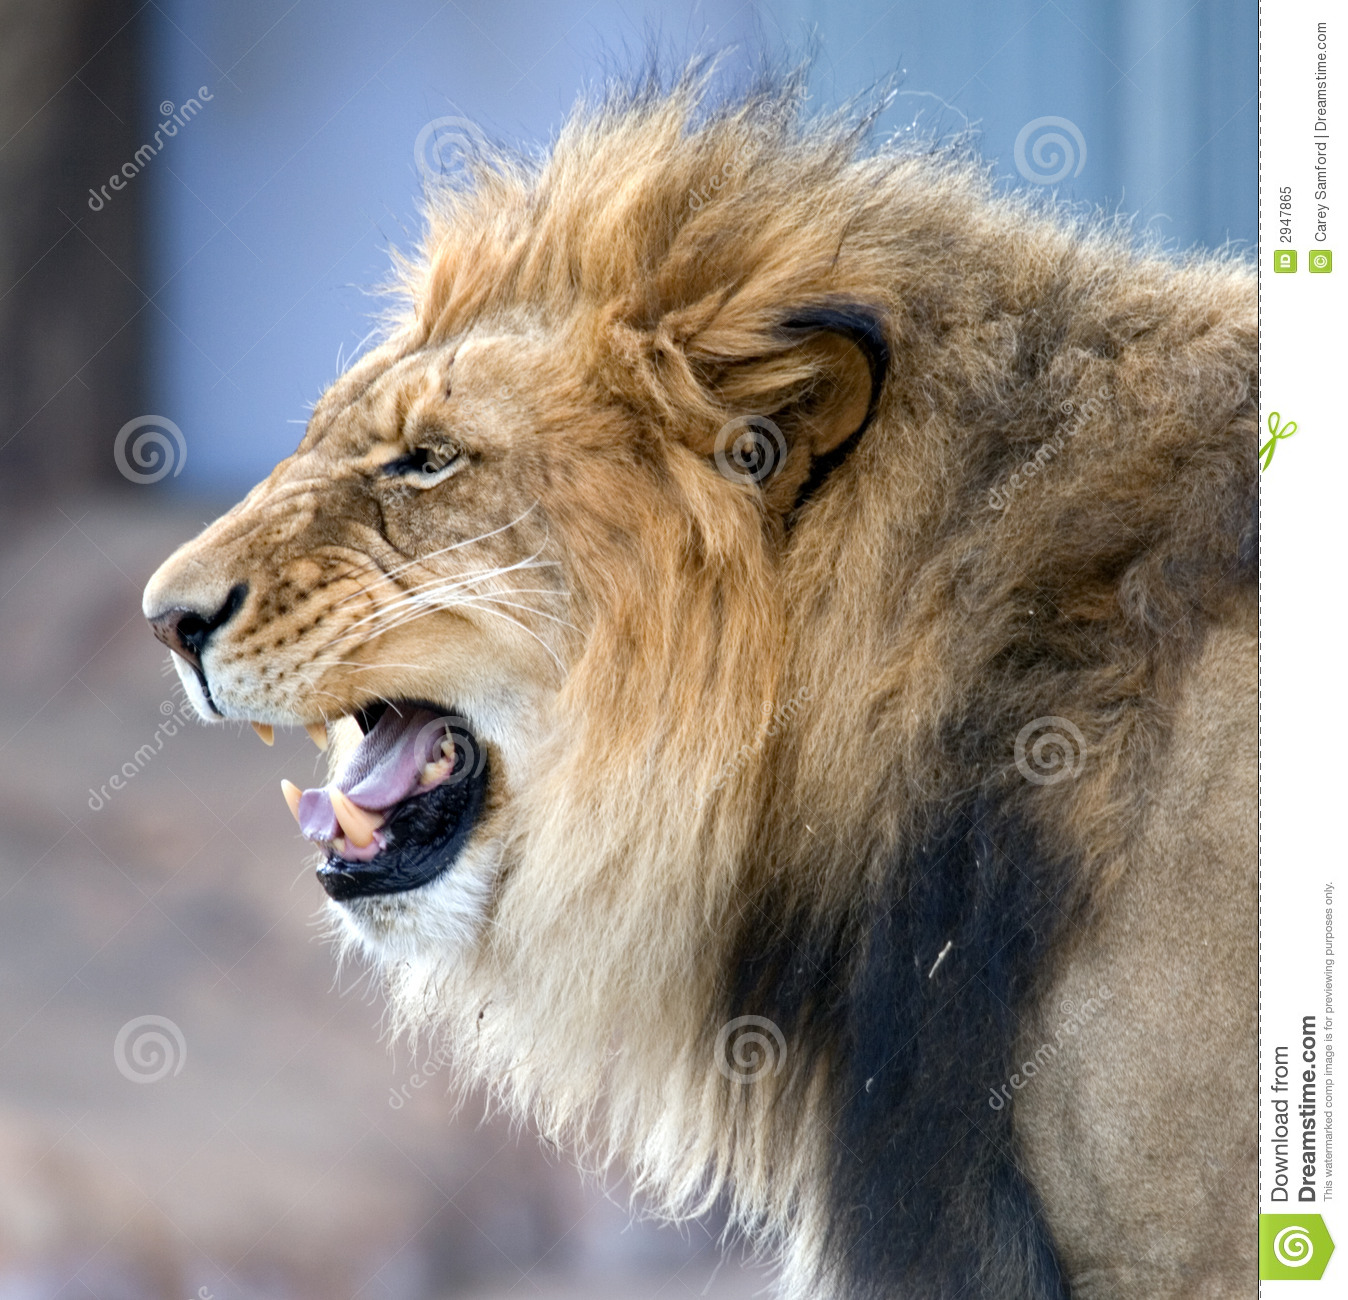 African Roaring Lion Royalty Free Stock Photo - Image: 2947865